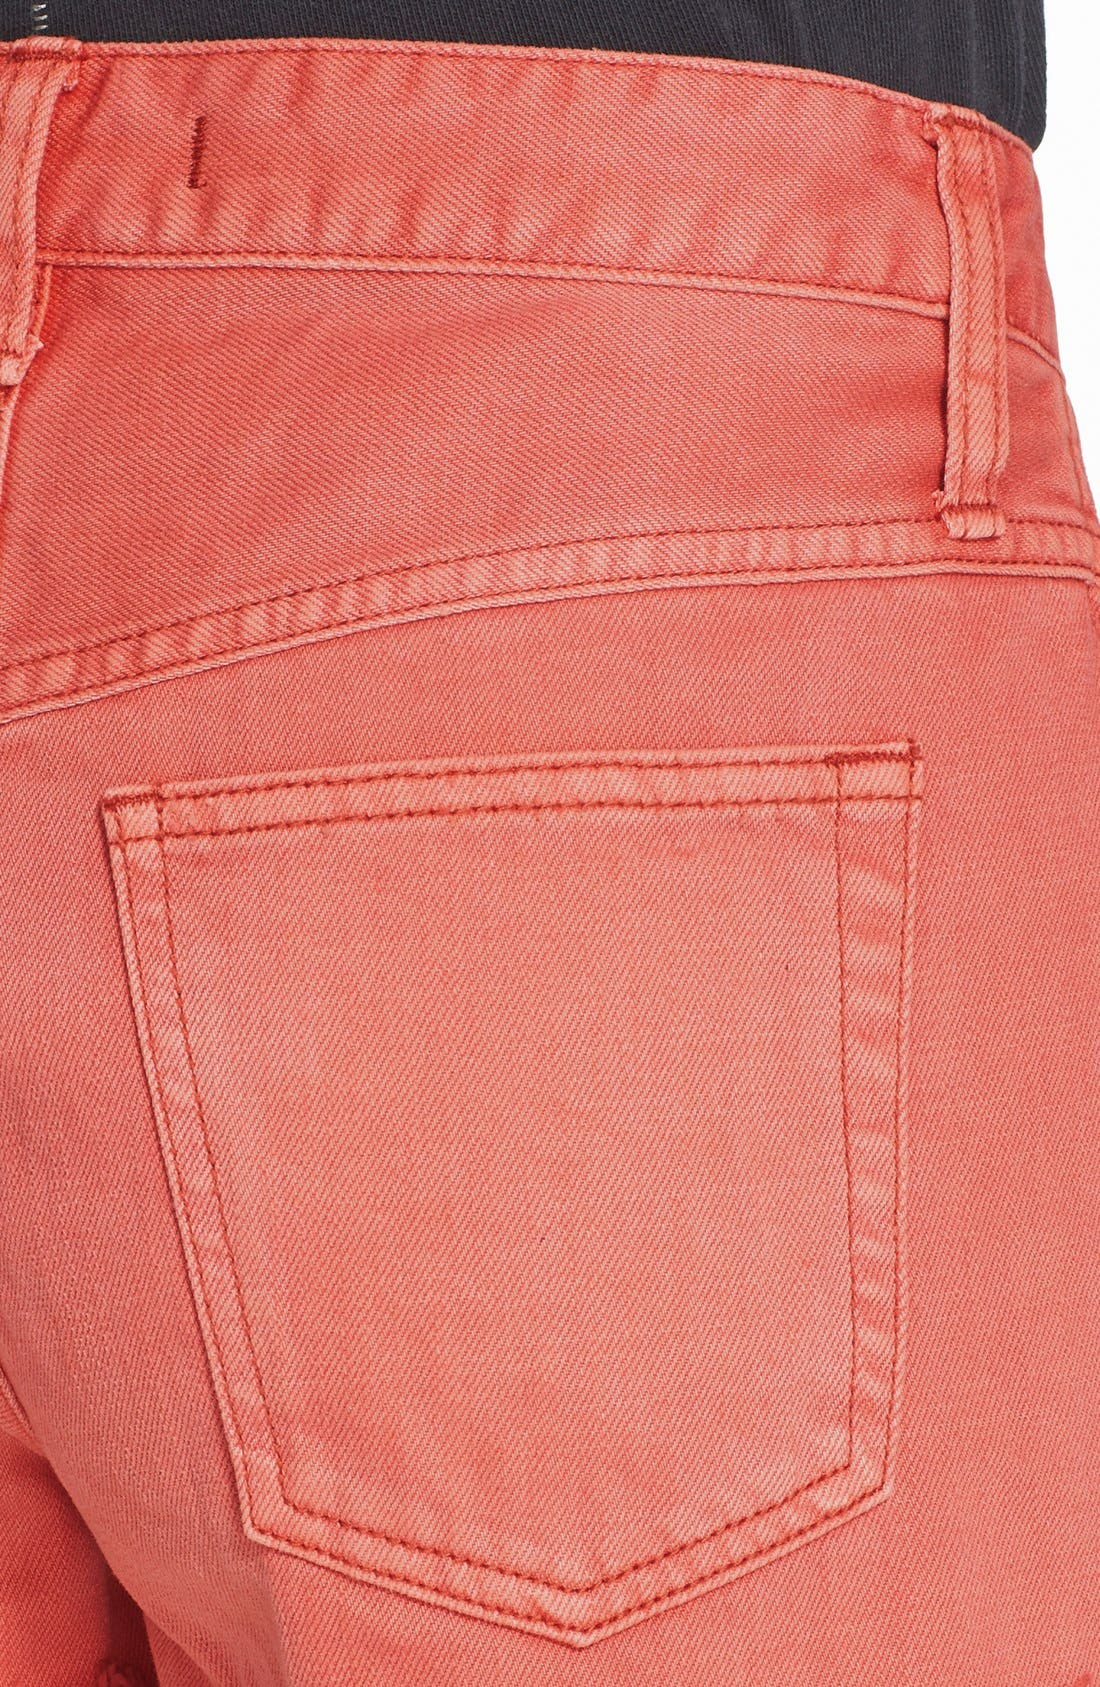 ,                             'Uptown' Denim Shorts,                             Alternate thumbnail 31, color,                             955